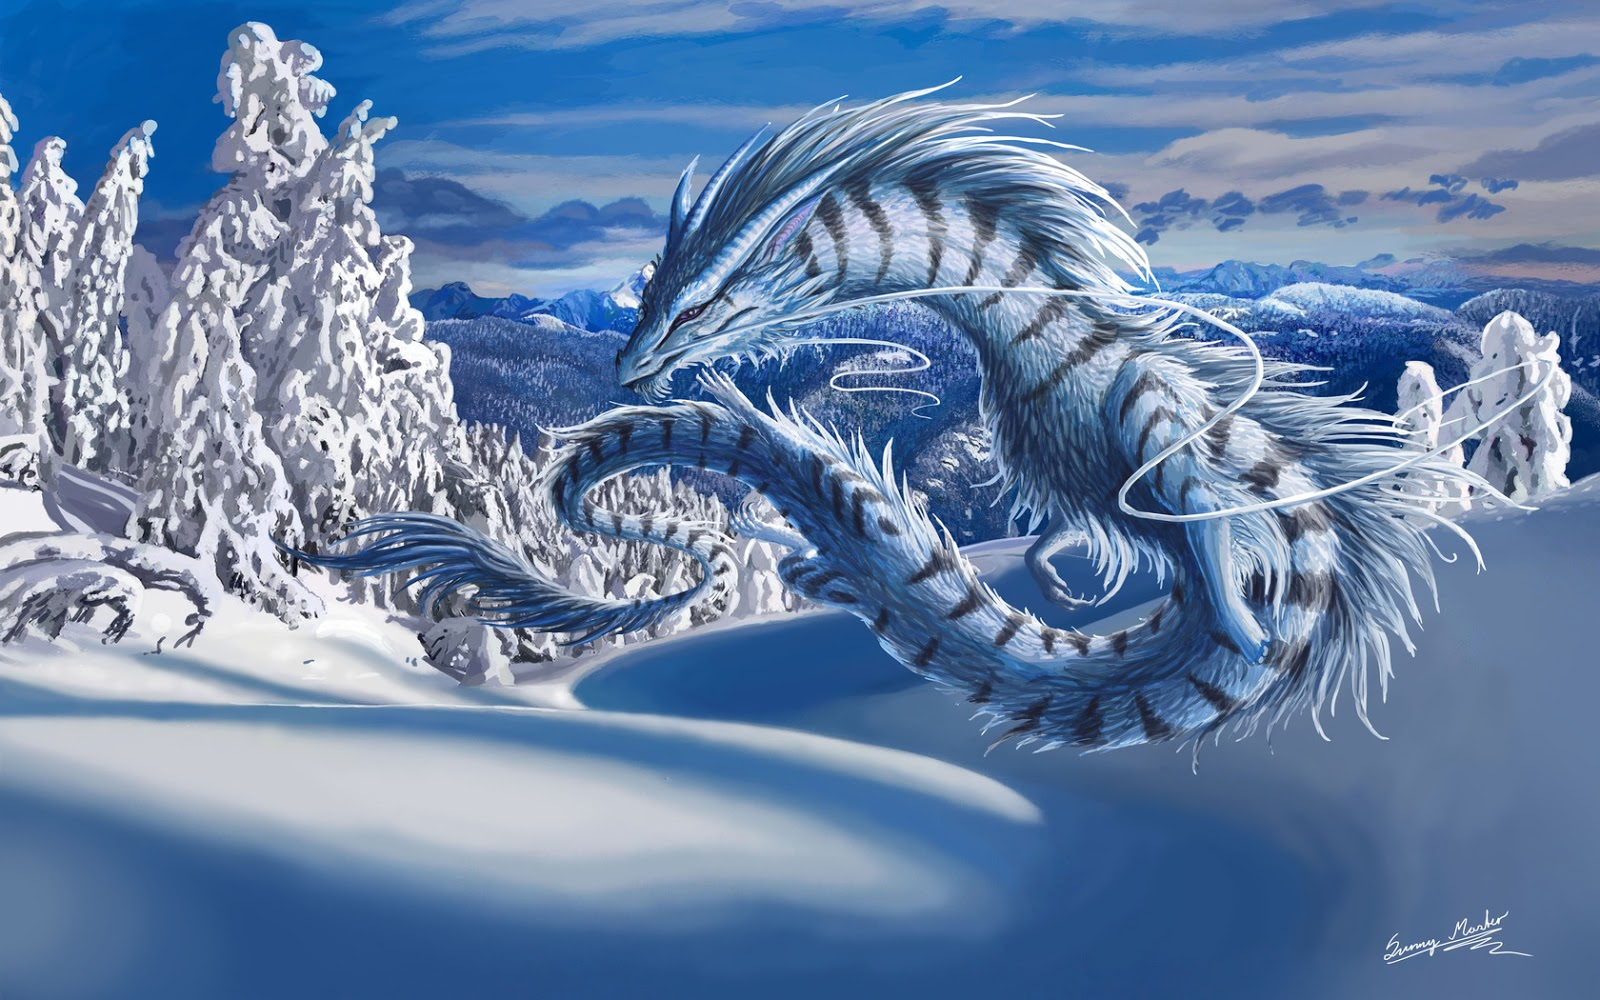 30 High Definition 3d Ipad Wallpapers: Wallpapers Hd For Mac: Dragon 3D Wallpaper High Definition